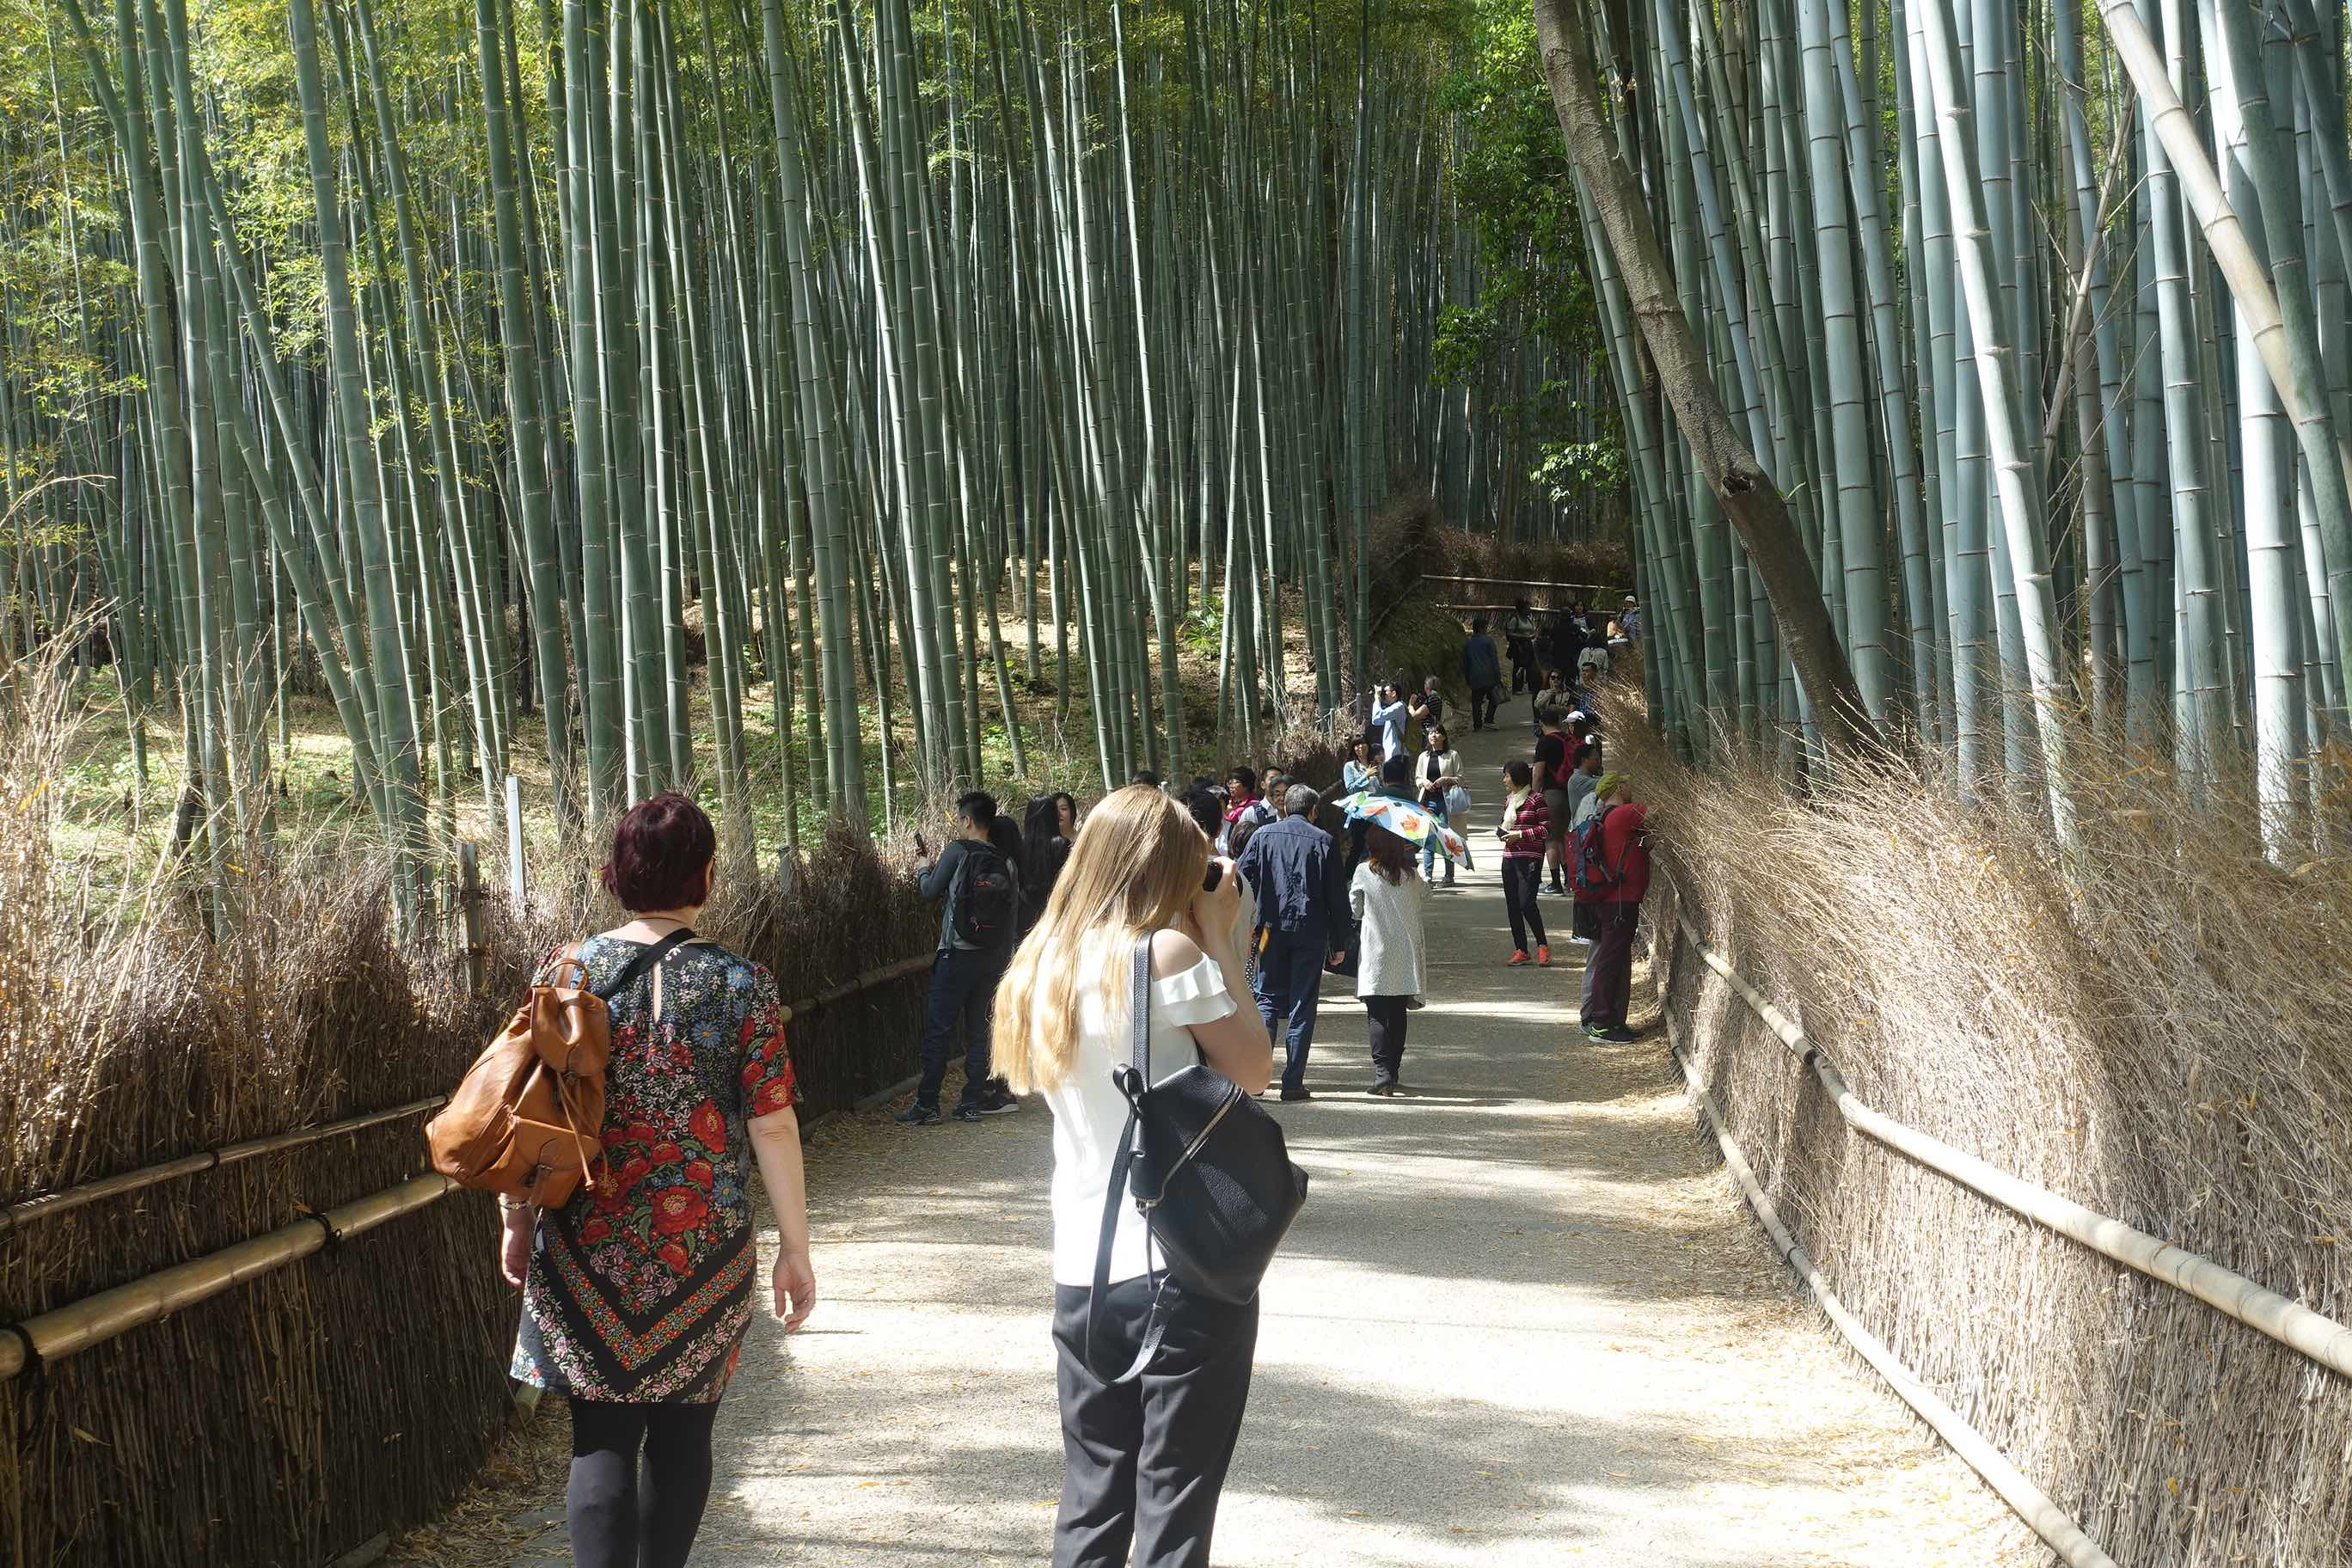 Over-tourism solution trial project in Kyoto works dispersal in Arashiyama Region by controlling time and place